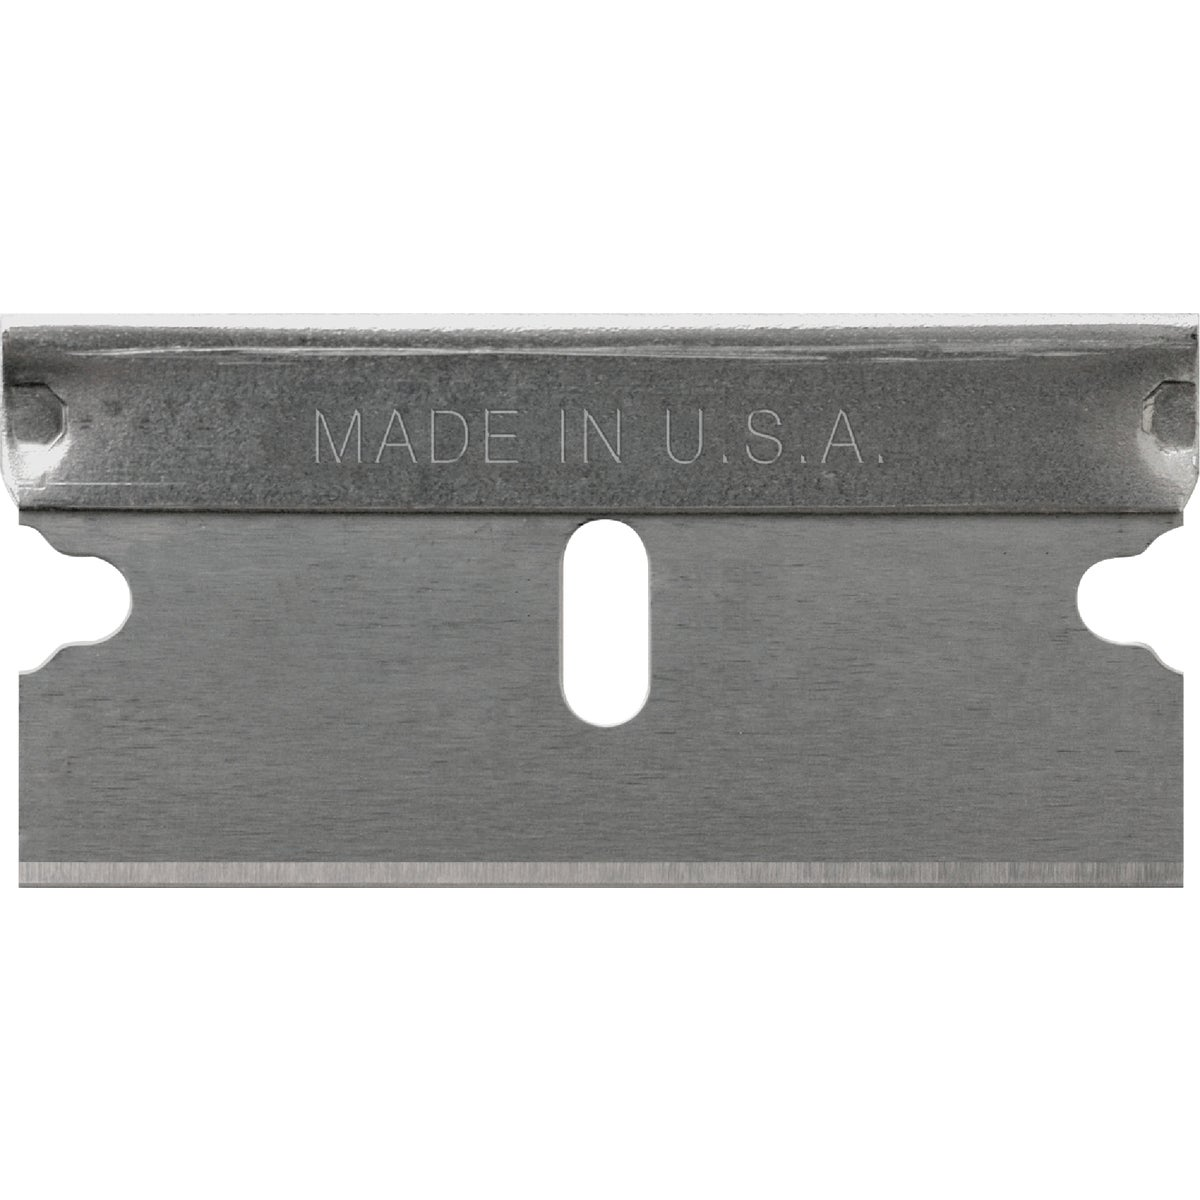 100PK RAZOR BLADE - 05-121C by Techni Edge Mfg Corp